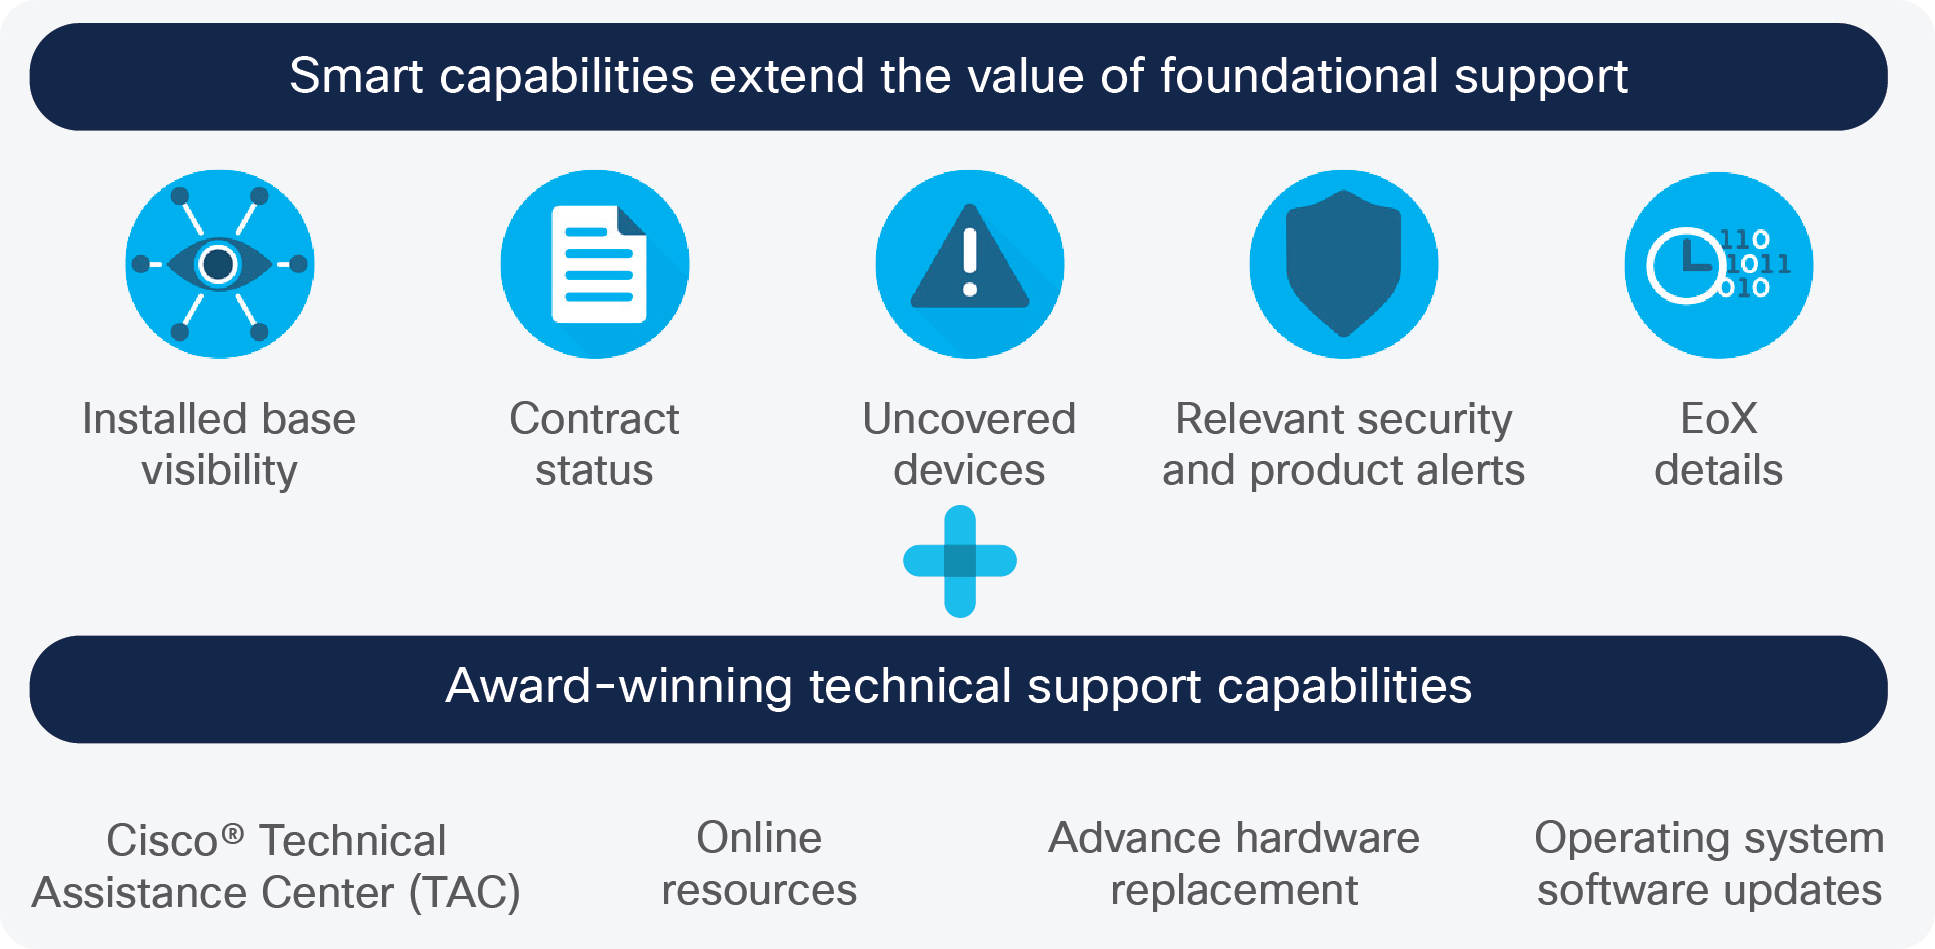 Smart capabilities extend the value of foundational support